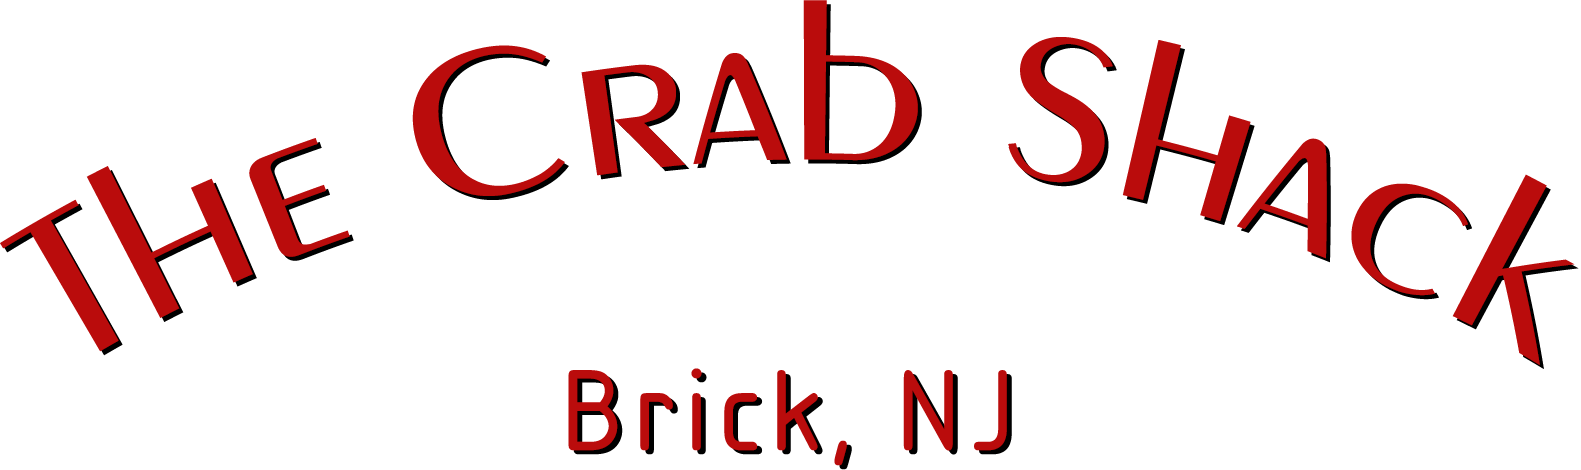 The Crab Shack serves fresh seafood from the grill daily